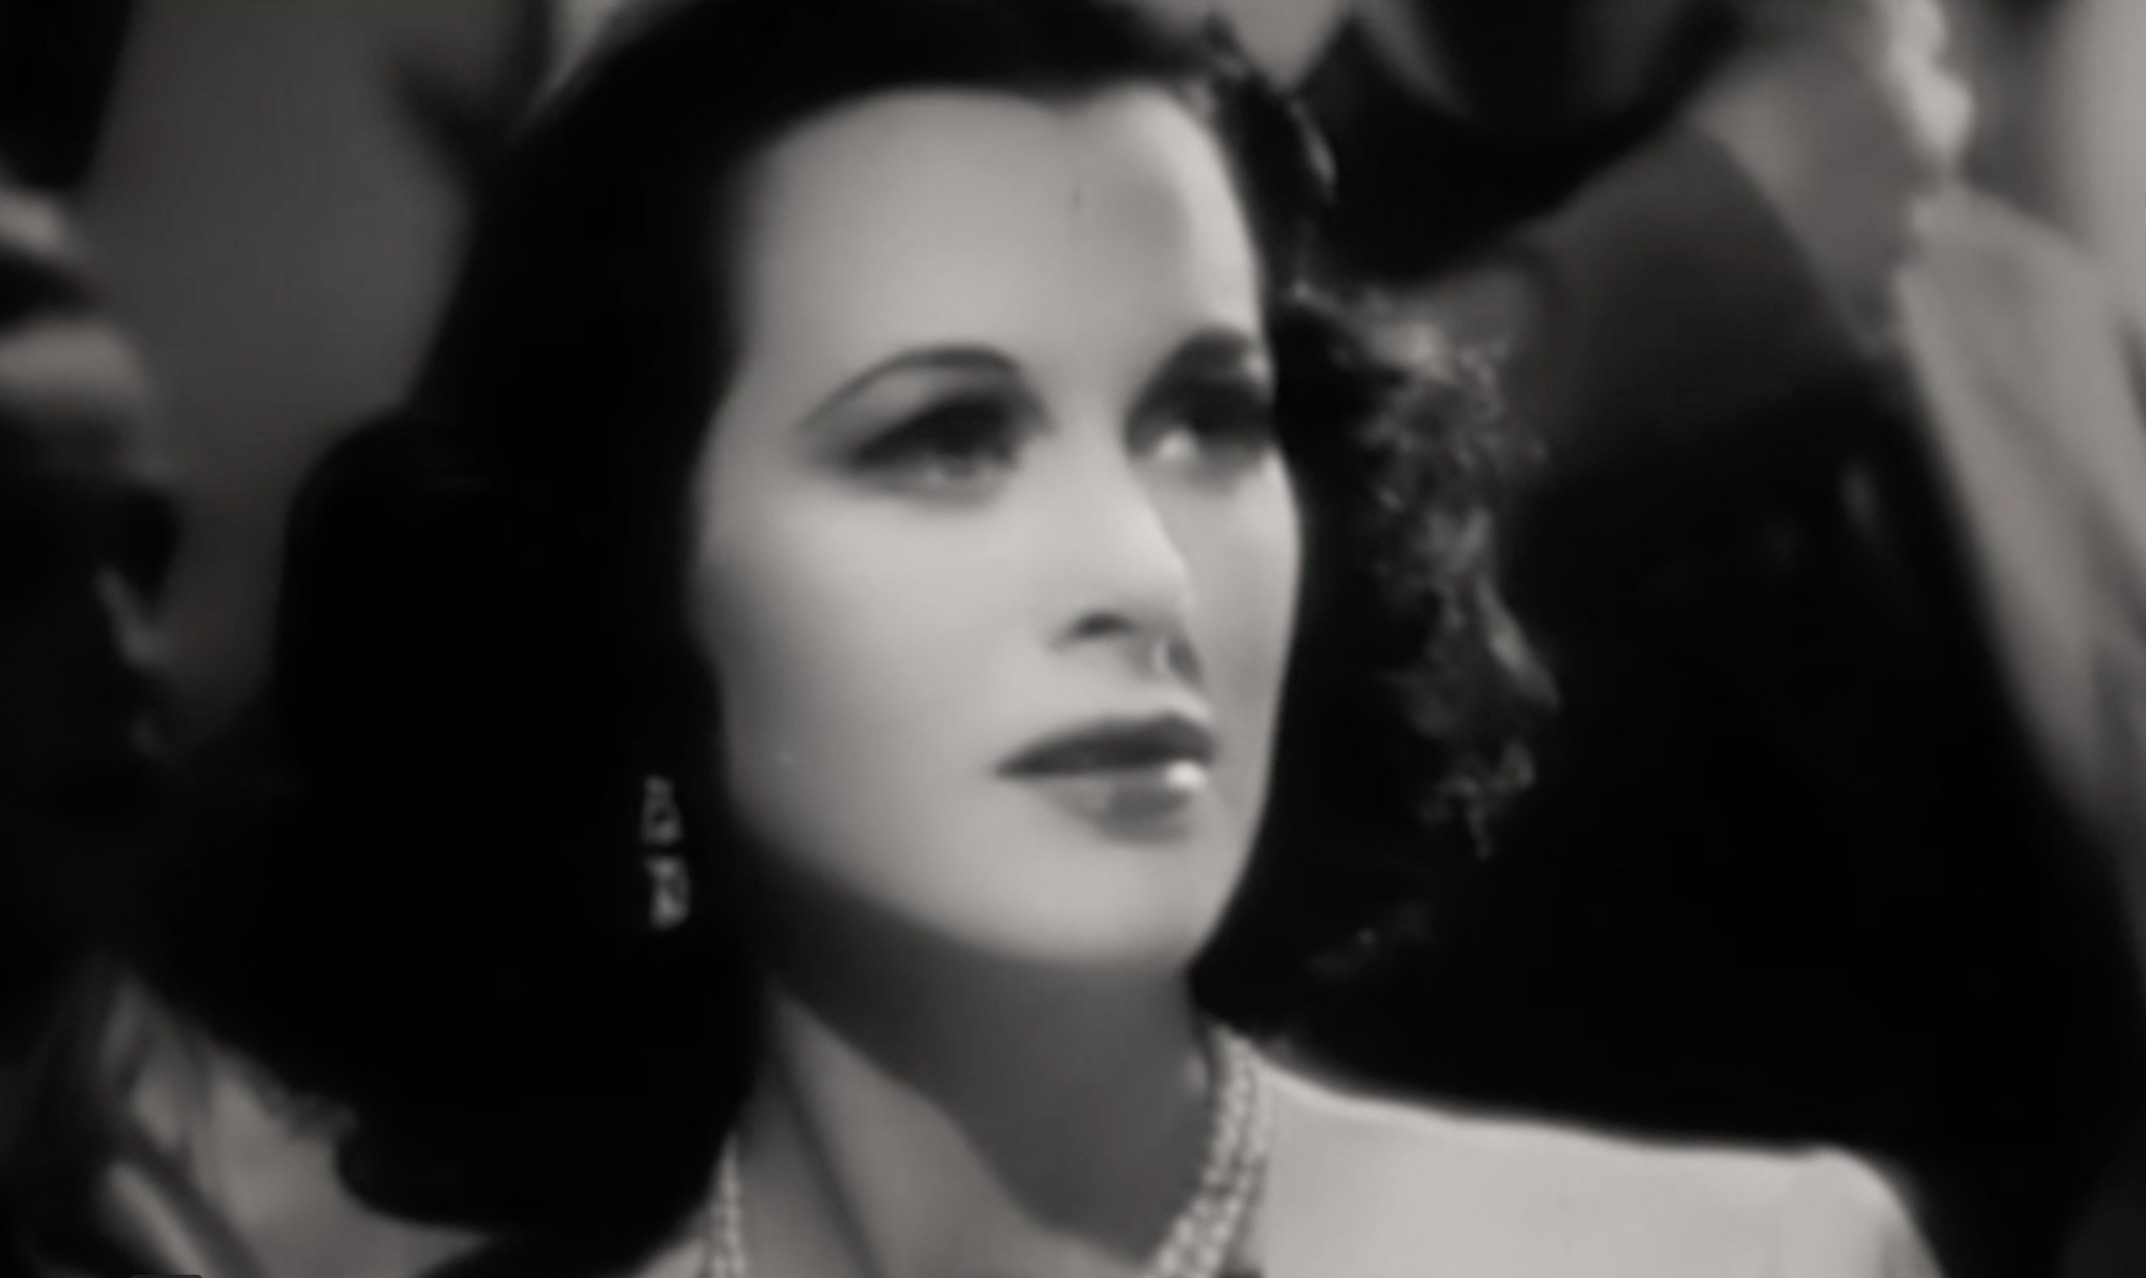 the face of Hedy Lamarr